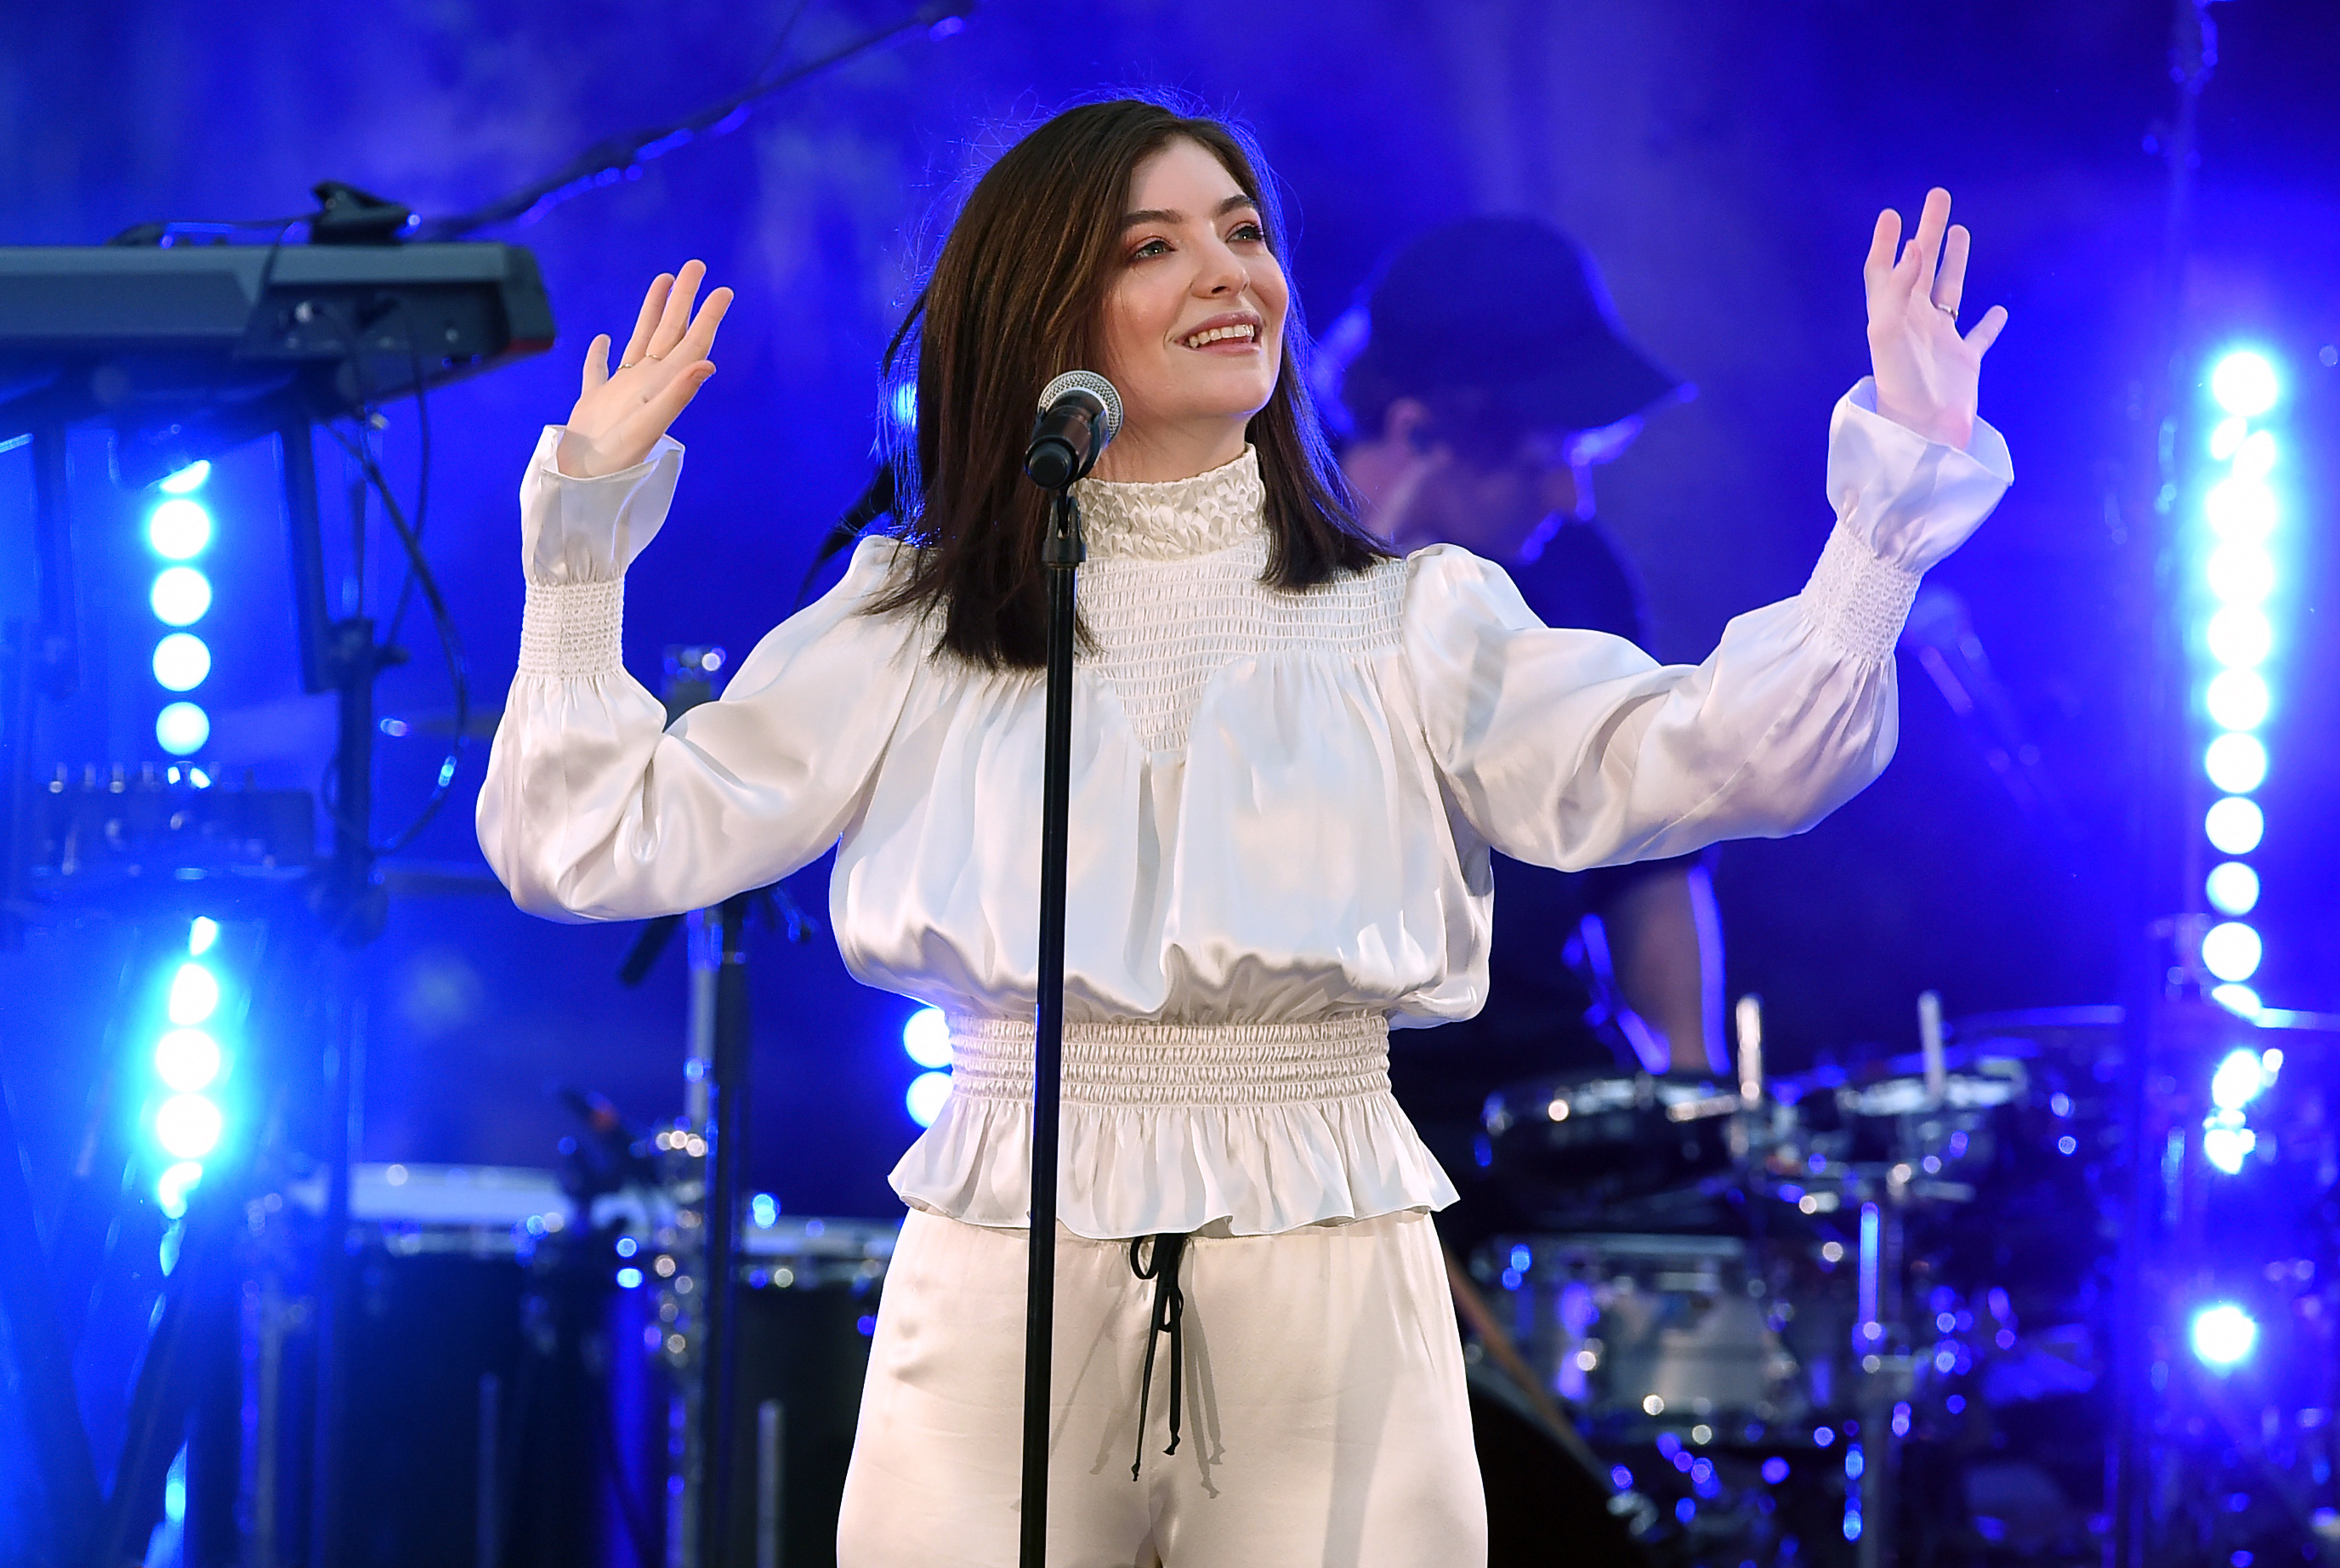 Lorde-Cancels-Concert-In-Israel-Scheduled-For-Next-Summer-After-Appeals-By-Pro-Palestinian-Activists